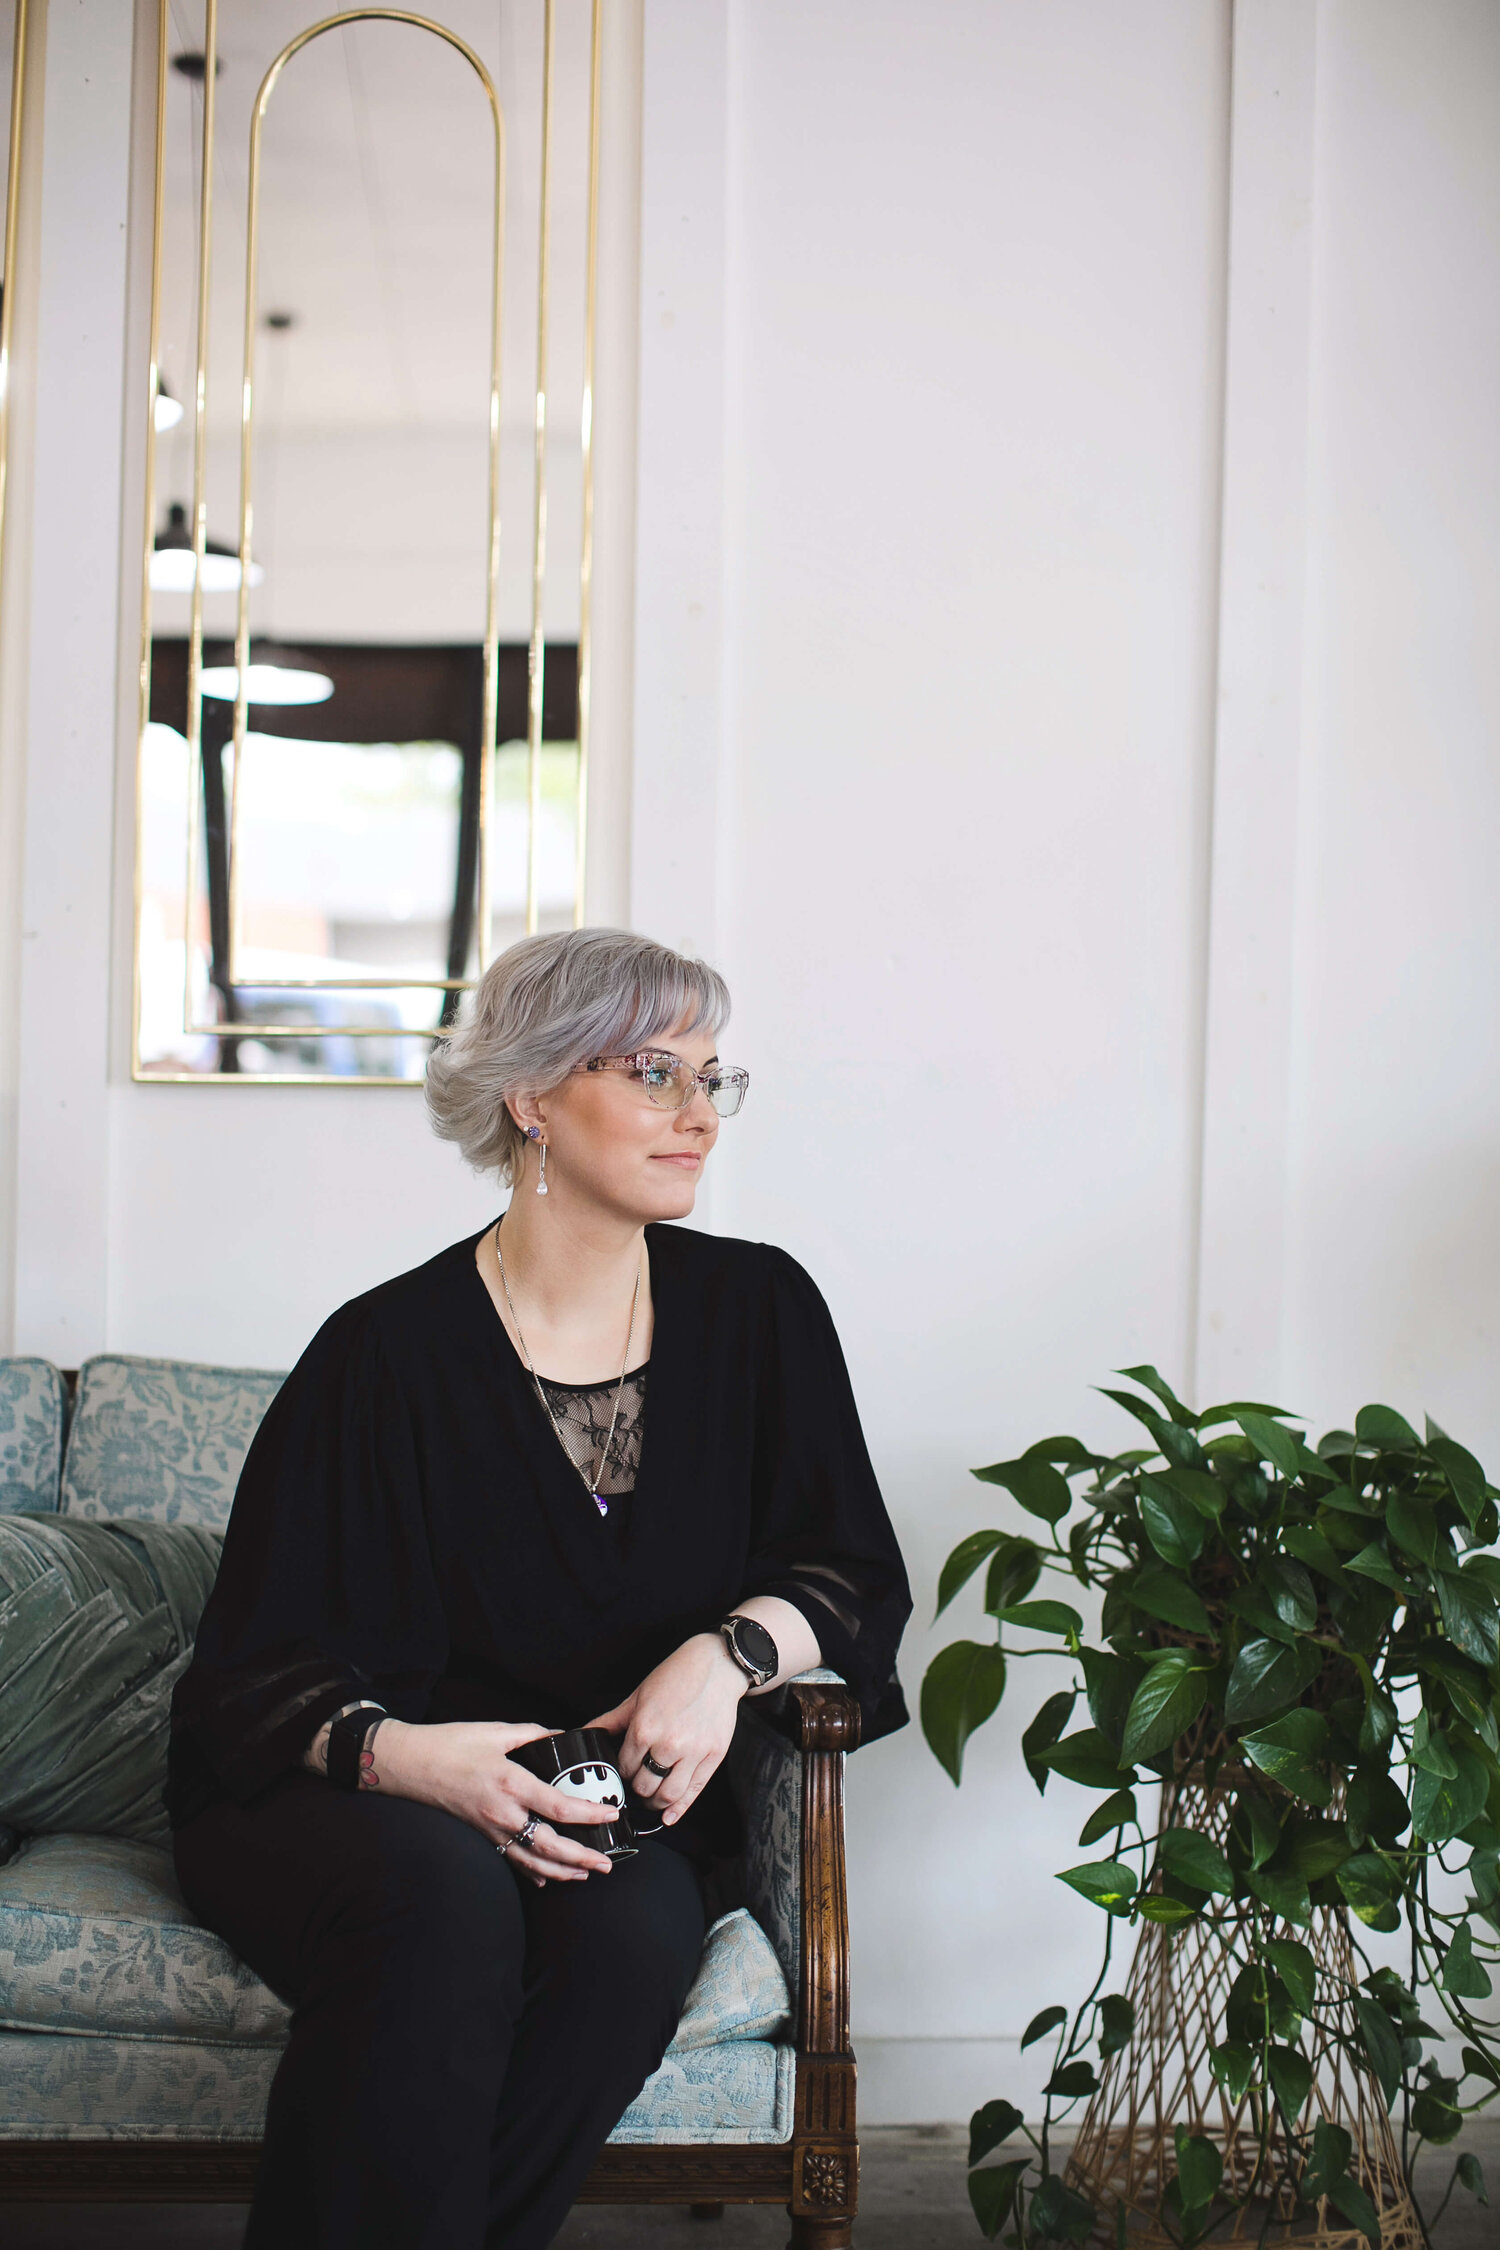 Anxiety therapist in Boise sits on a couch, with a coffee cup, looking off to the side.